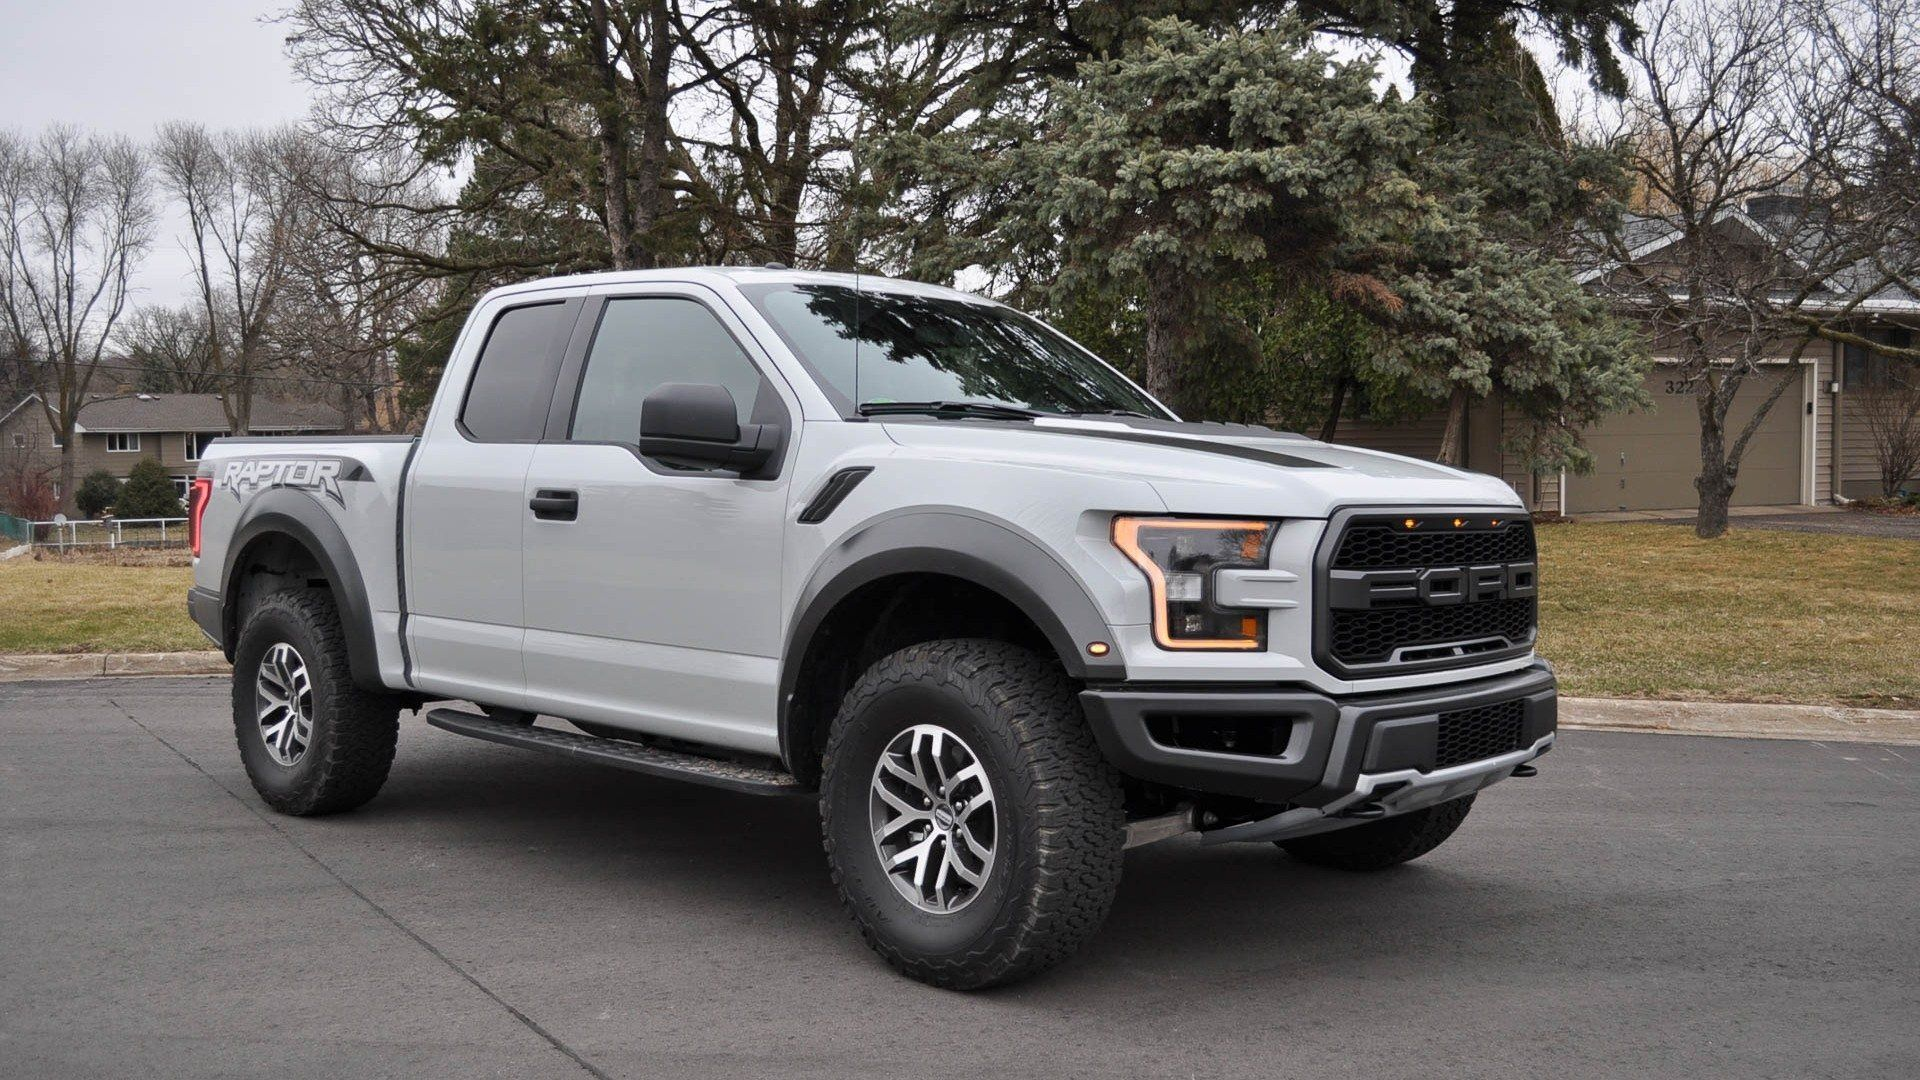 2020 Ford F150 Raptor Mpg Pictures In 2020 Ford F150 Raptor New Cars Ford F150